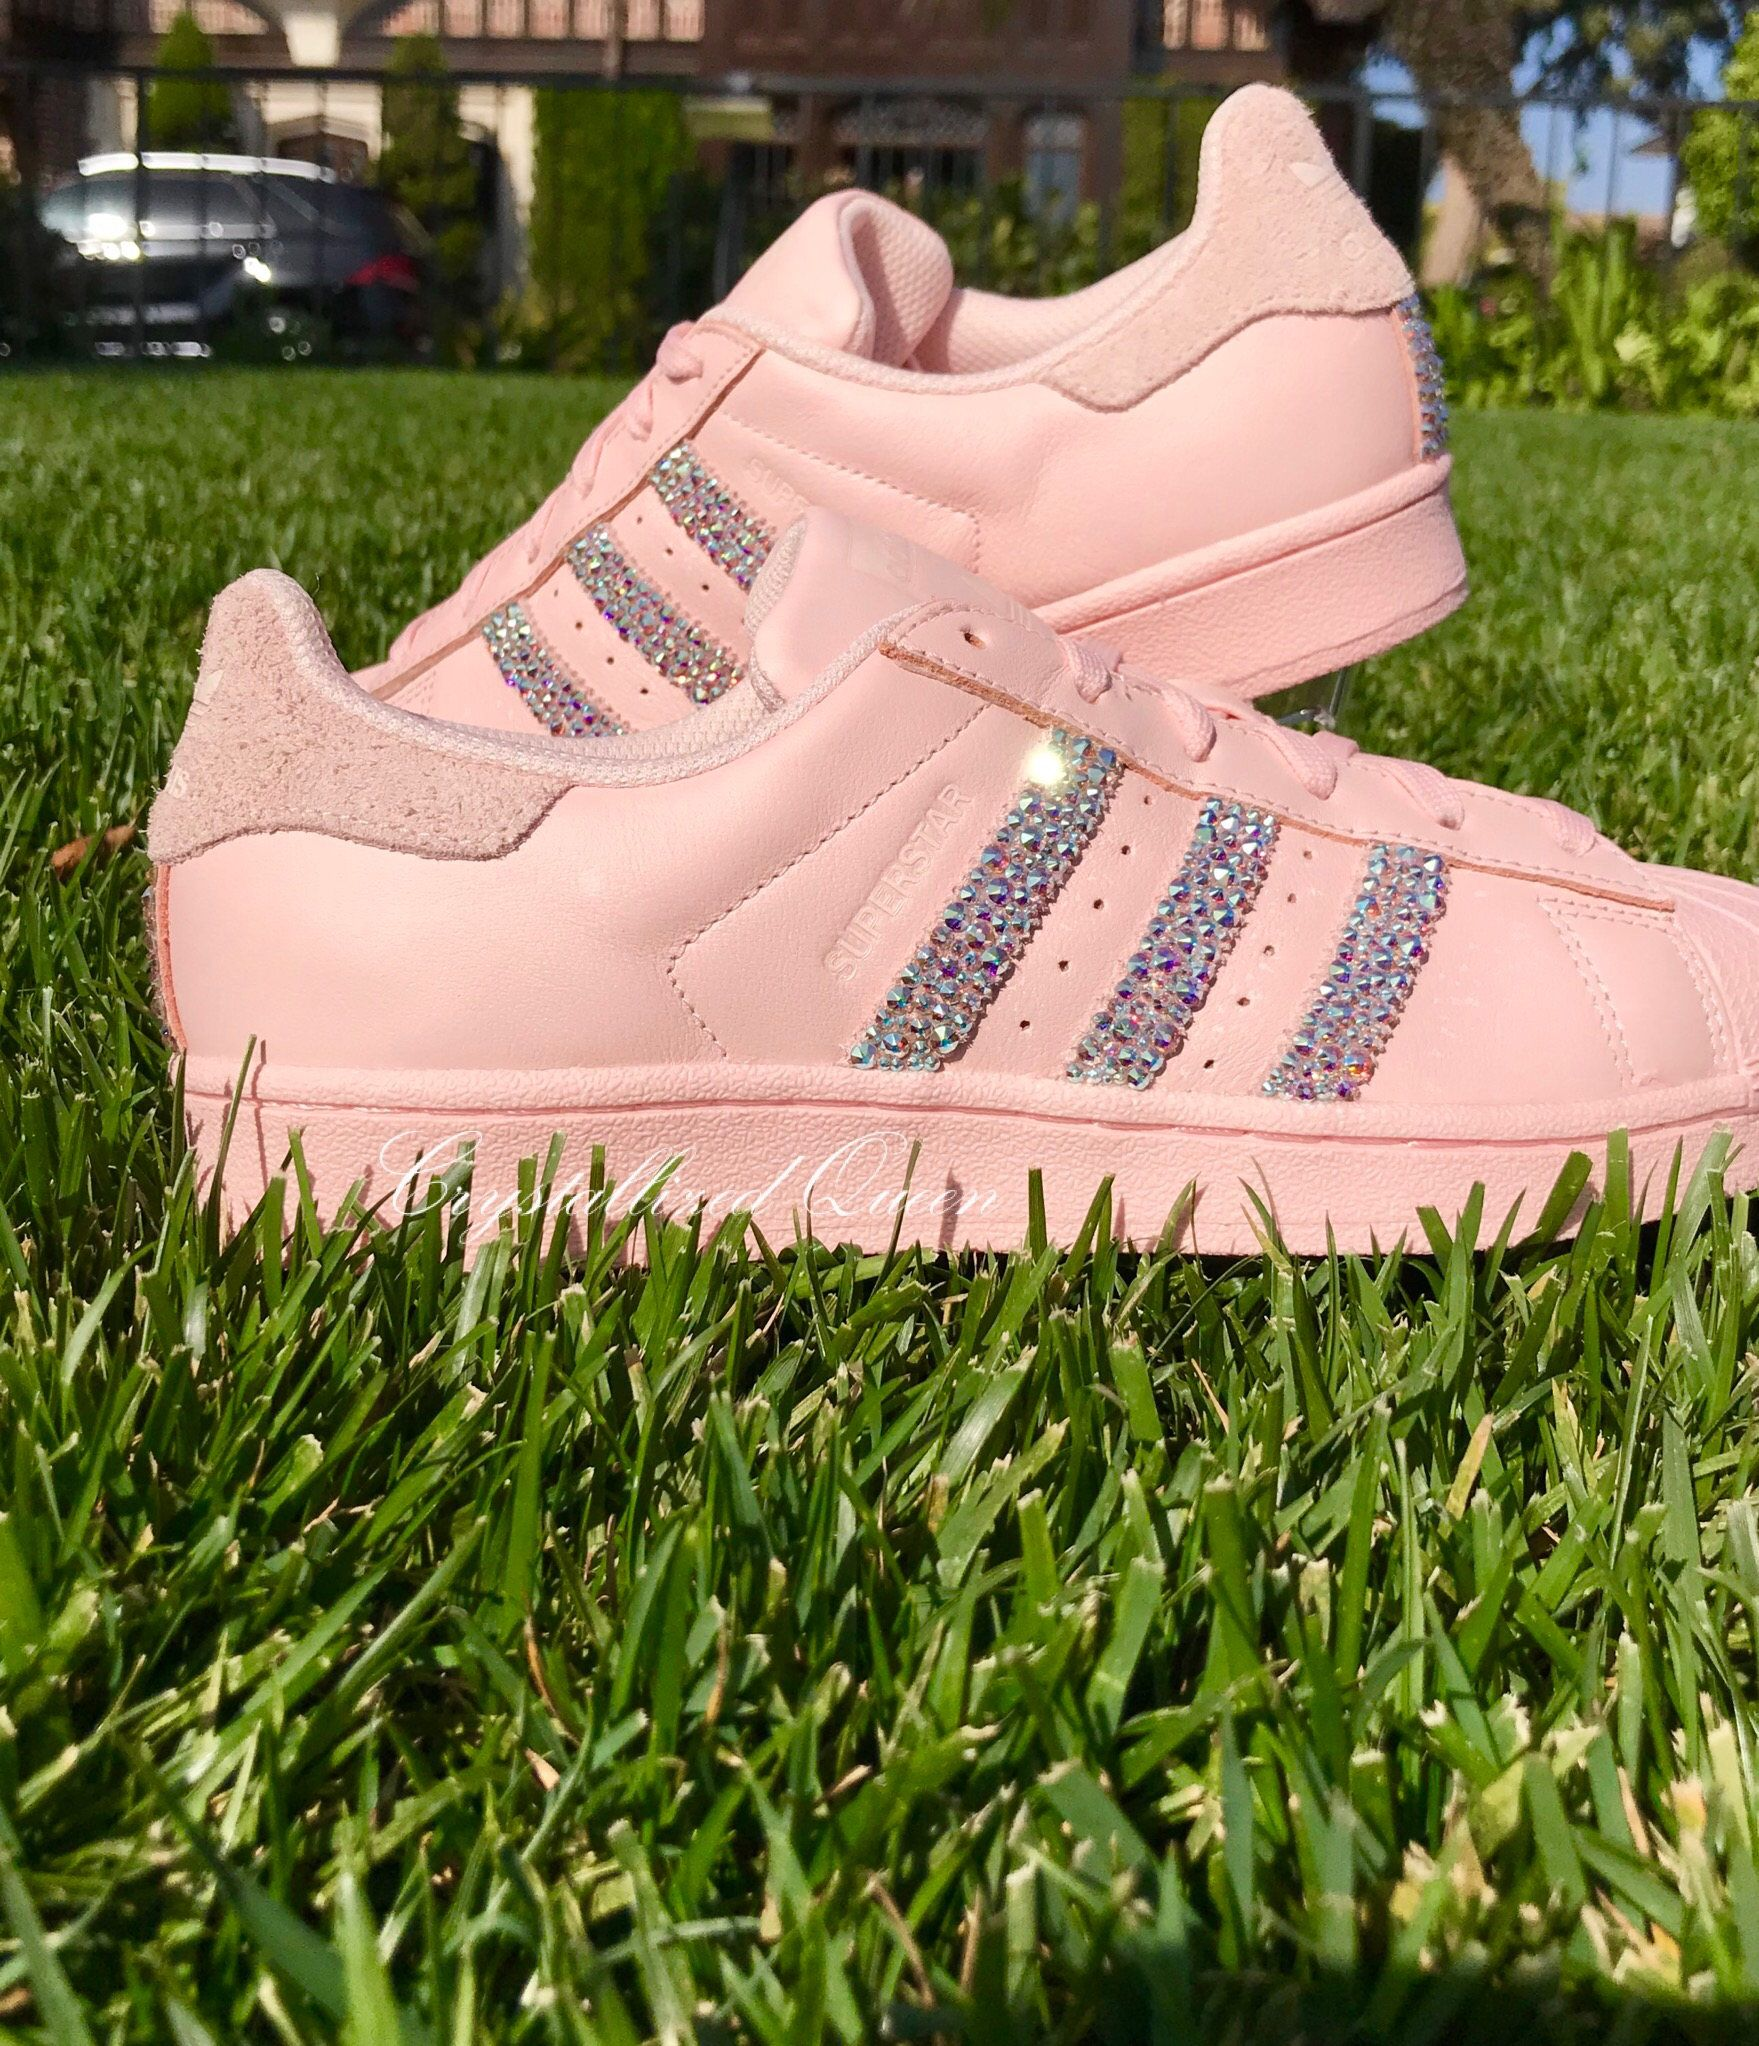 d125cbb806ea Adidas Superstar in Icypink with AB Swarovski Crystals by CRYSTALLIZEDQUEEN  on Etsy